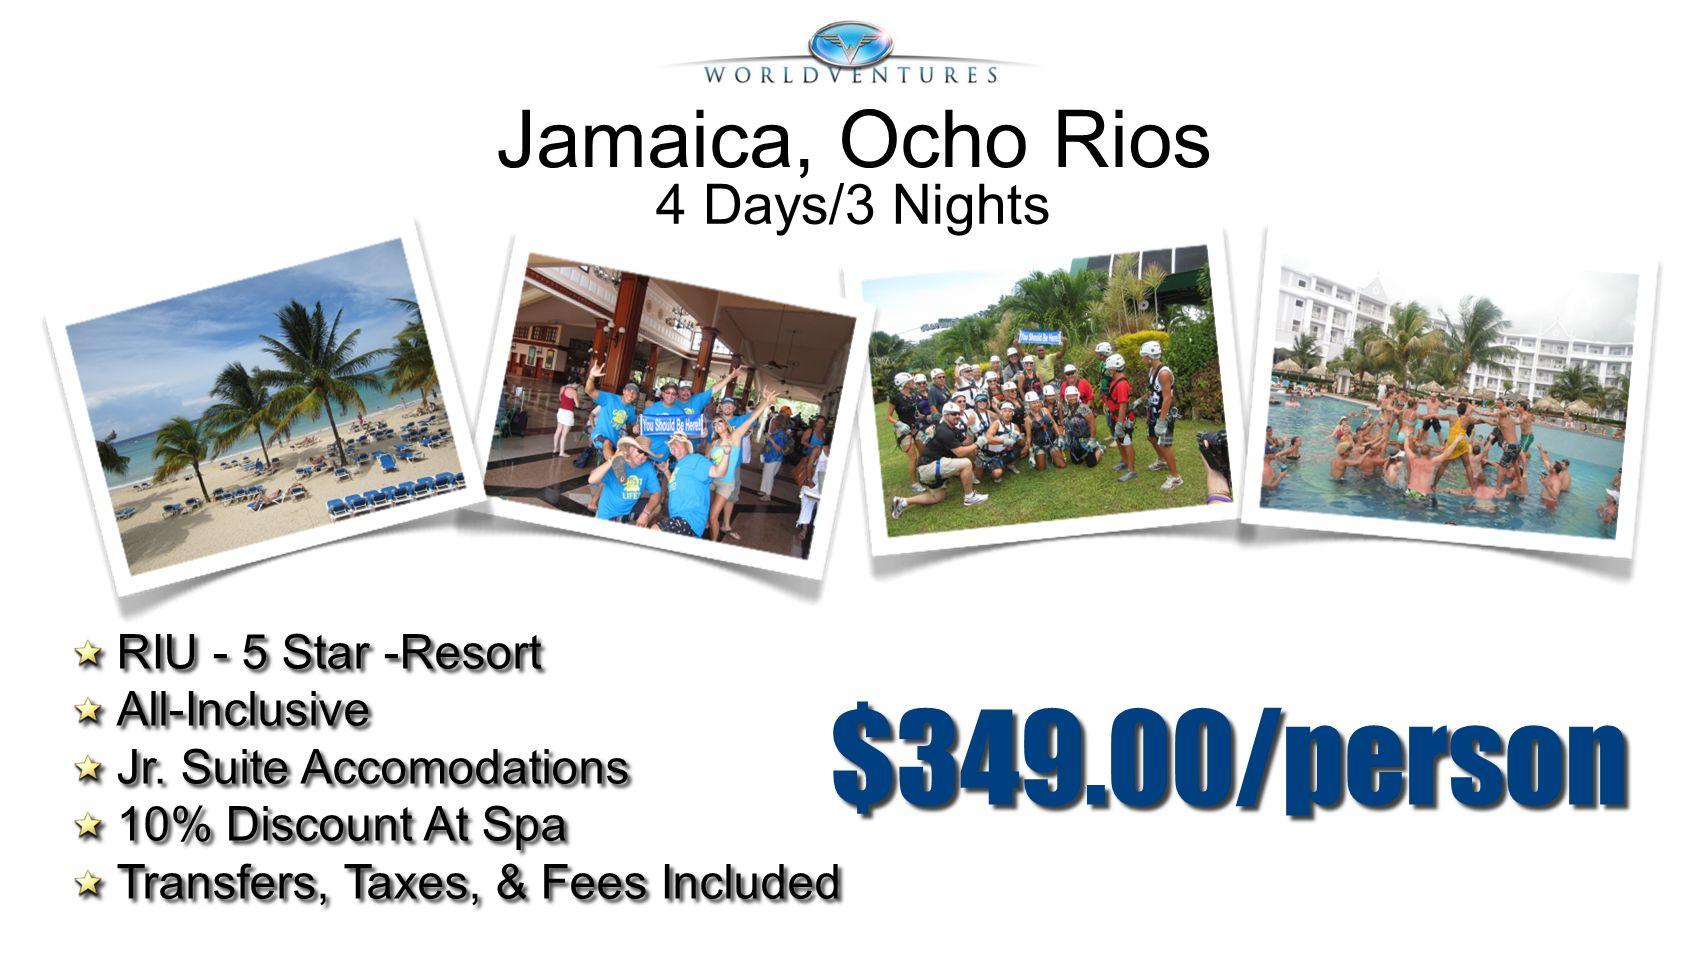 $349.00/person Jamaica, Ocho Rios 4 Days/3 Nights RIU - 5 Star -Resort